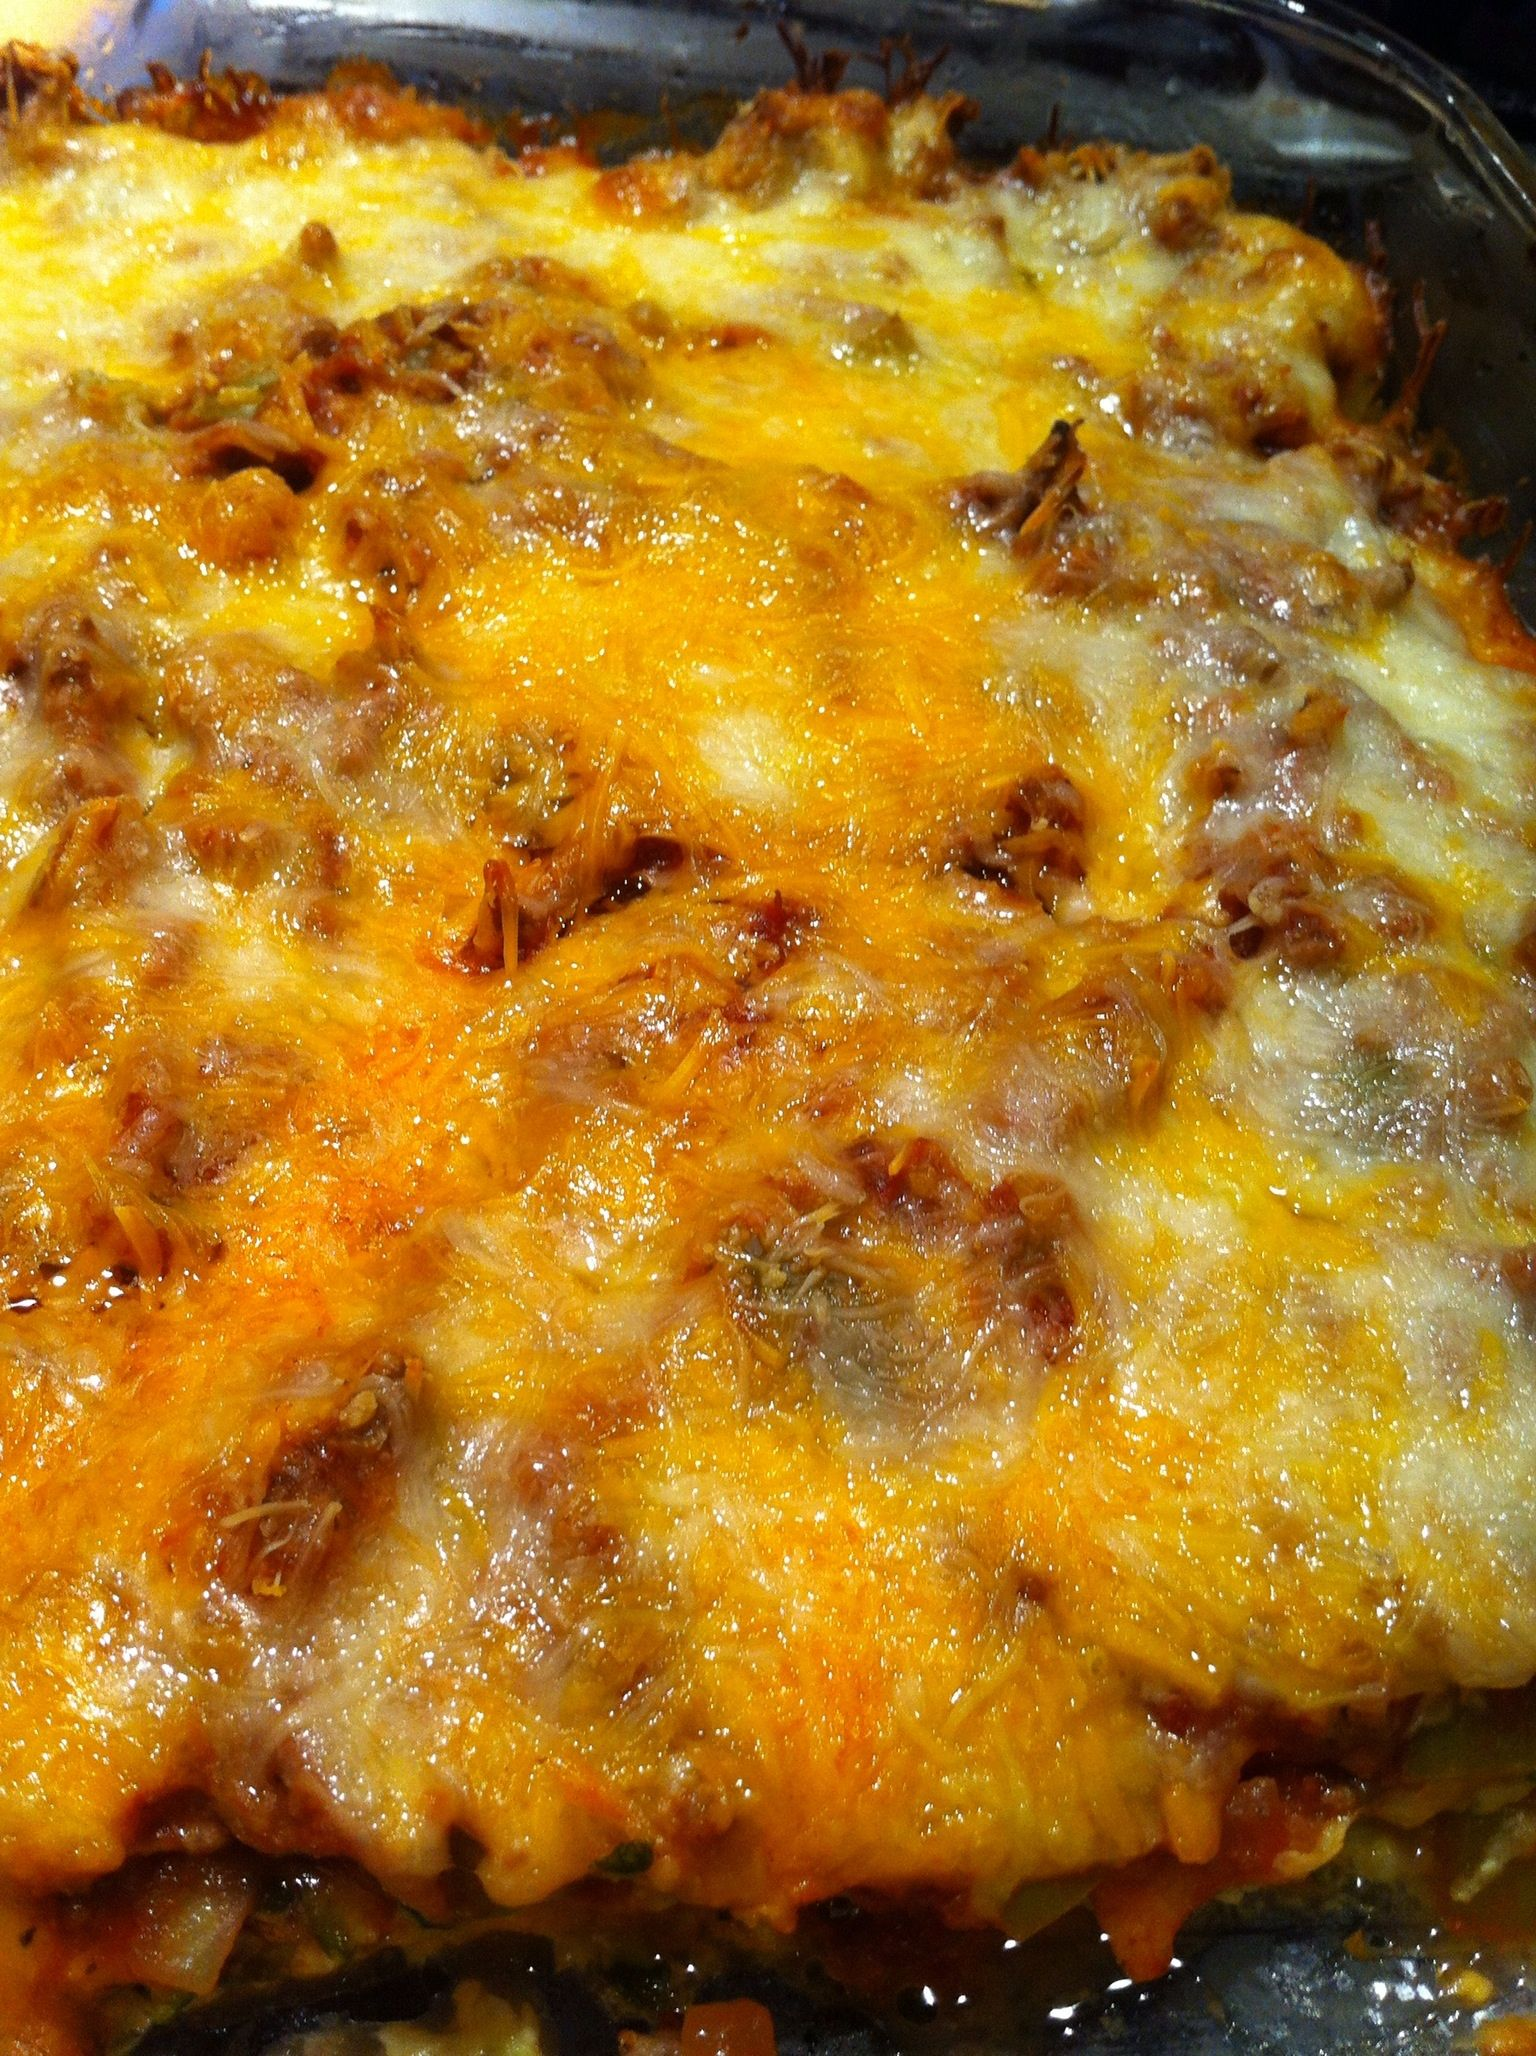 Cheesy Beef Zucchini Casserole Zuchinni Recipes Zucchini Casserole Recipes Beef Zucchini Casserole